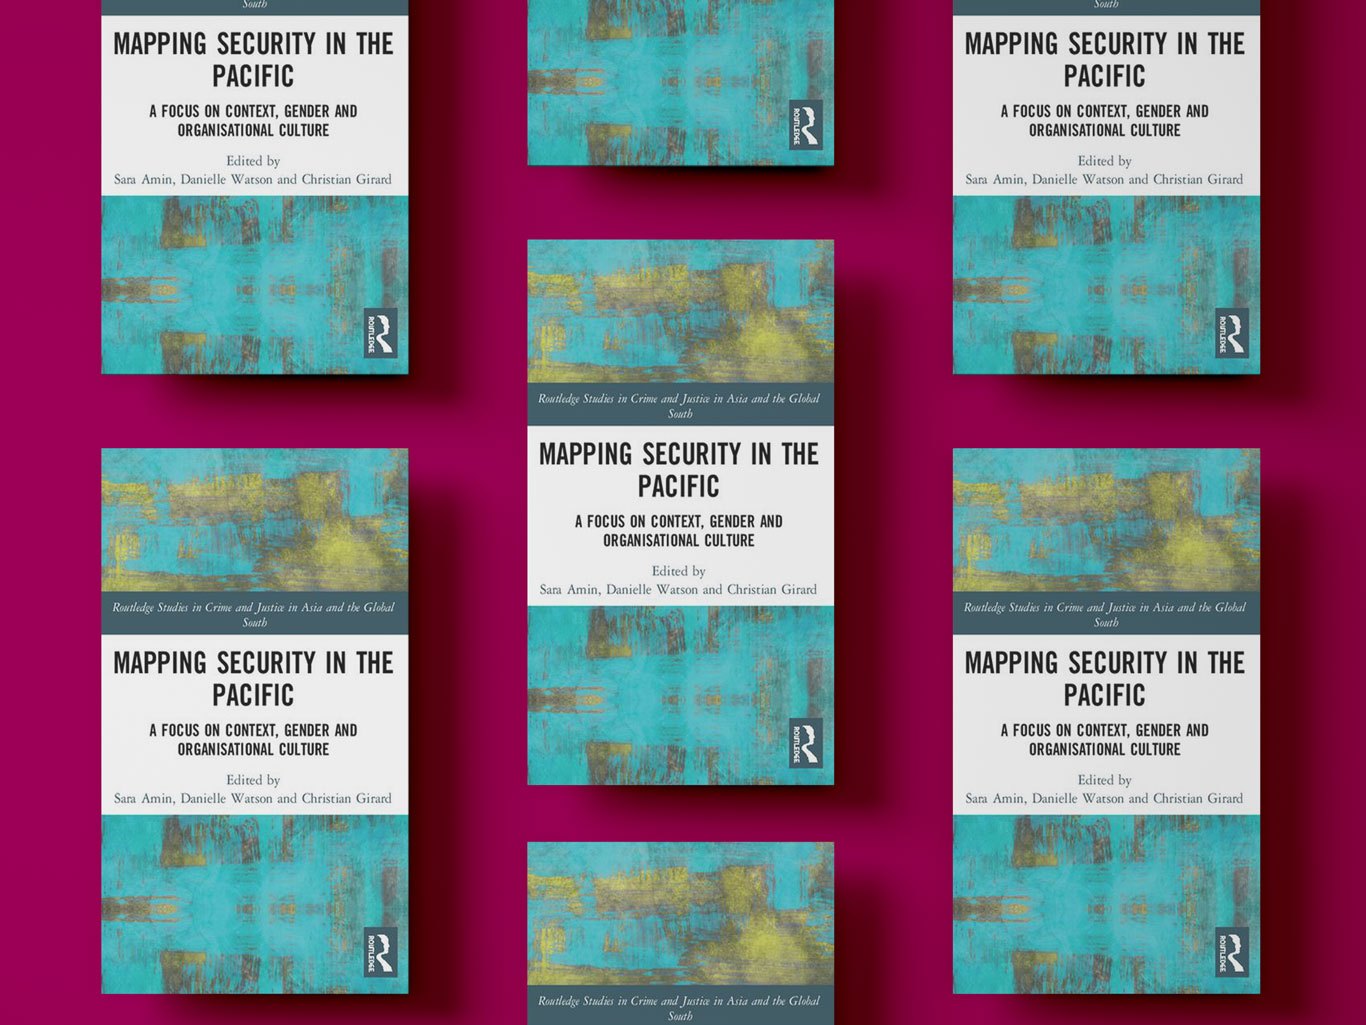 New Publication on Human Security in Oceania